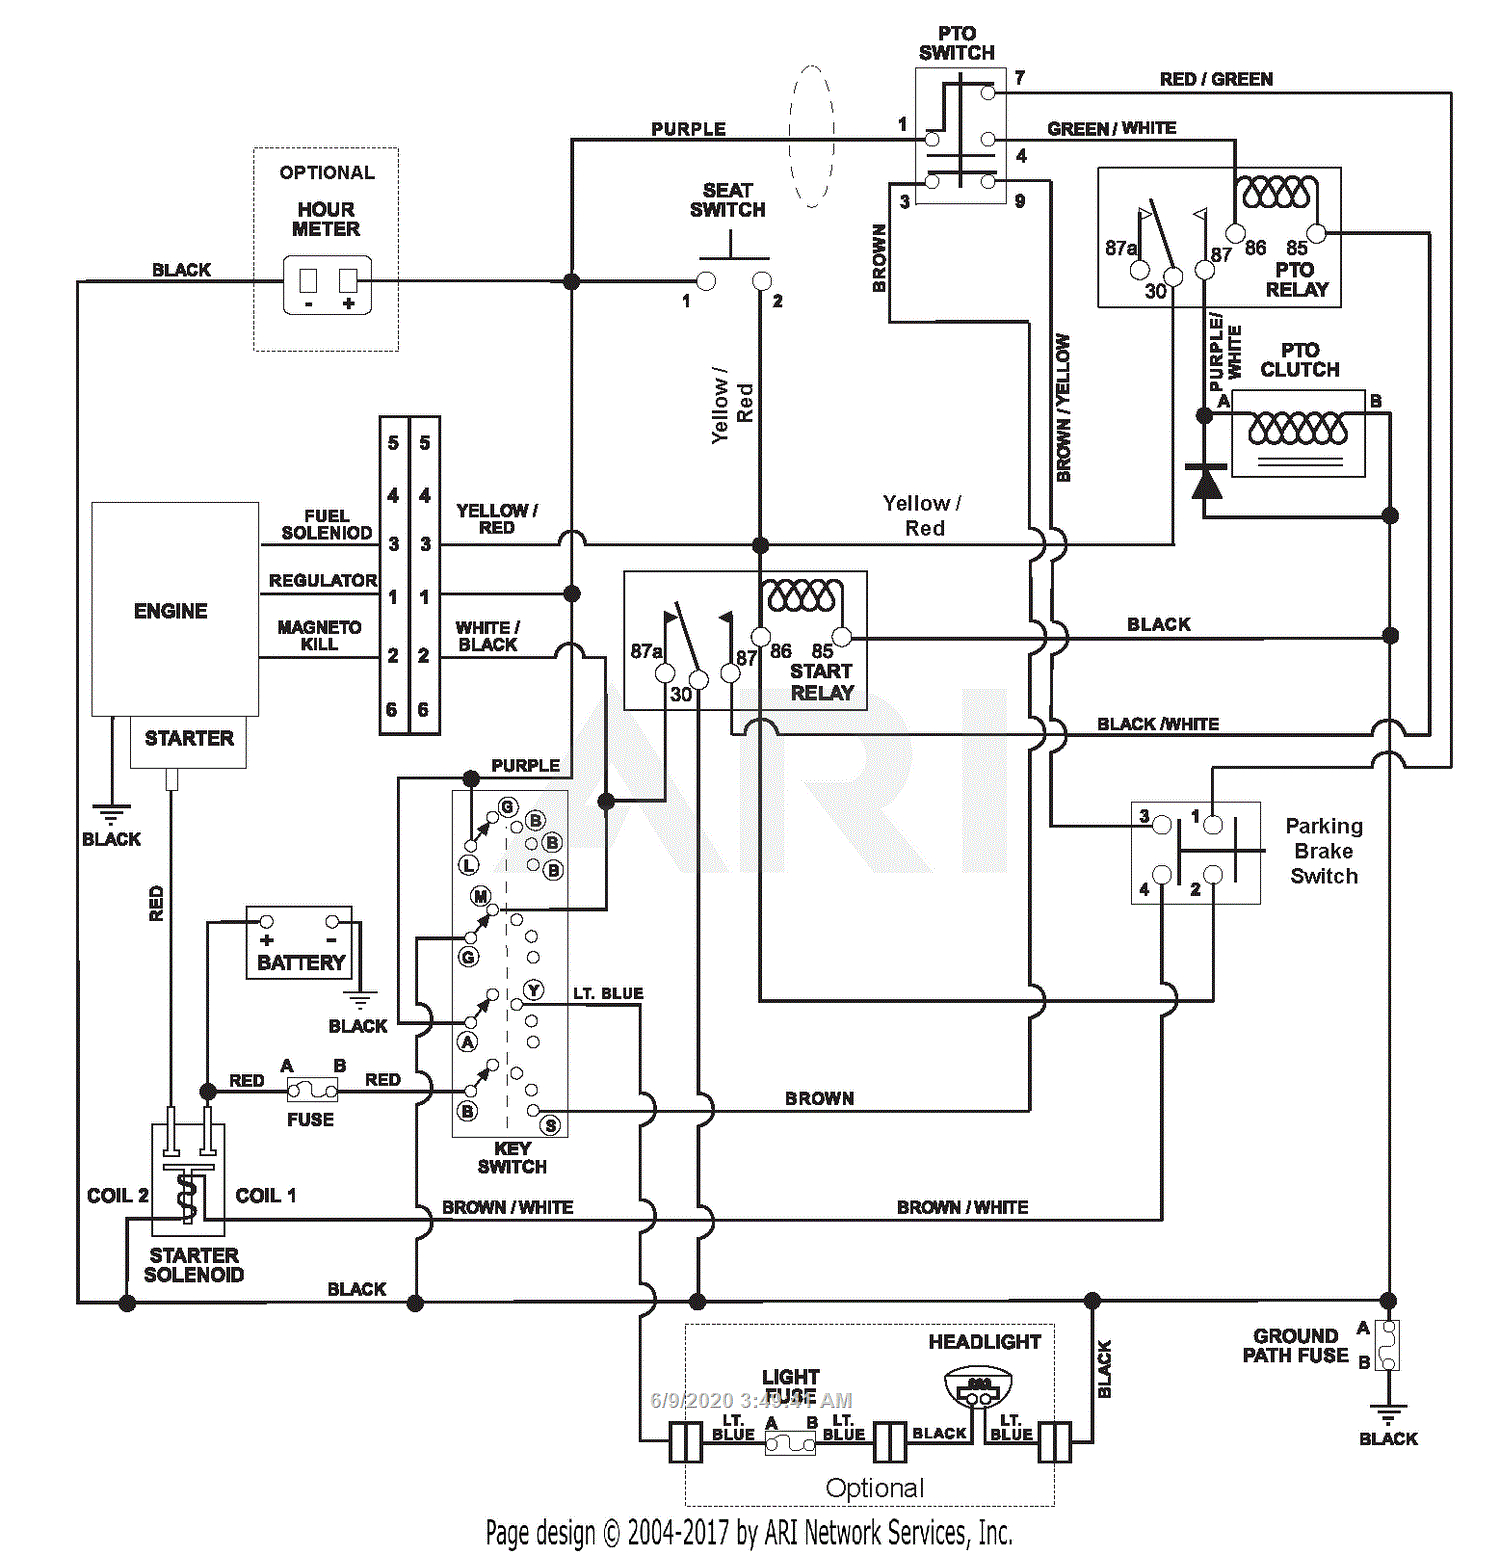 Briggs and Stratton Ignition Wiring Diagram 4329be0 Kohler 17 Hp Wiring Diagram Wiring Library